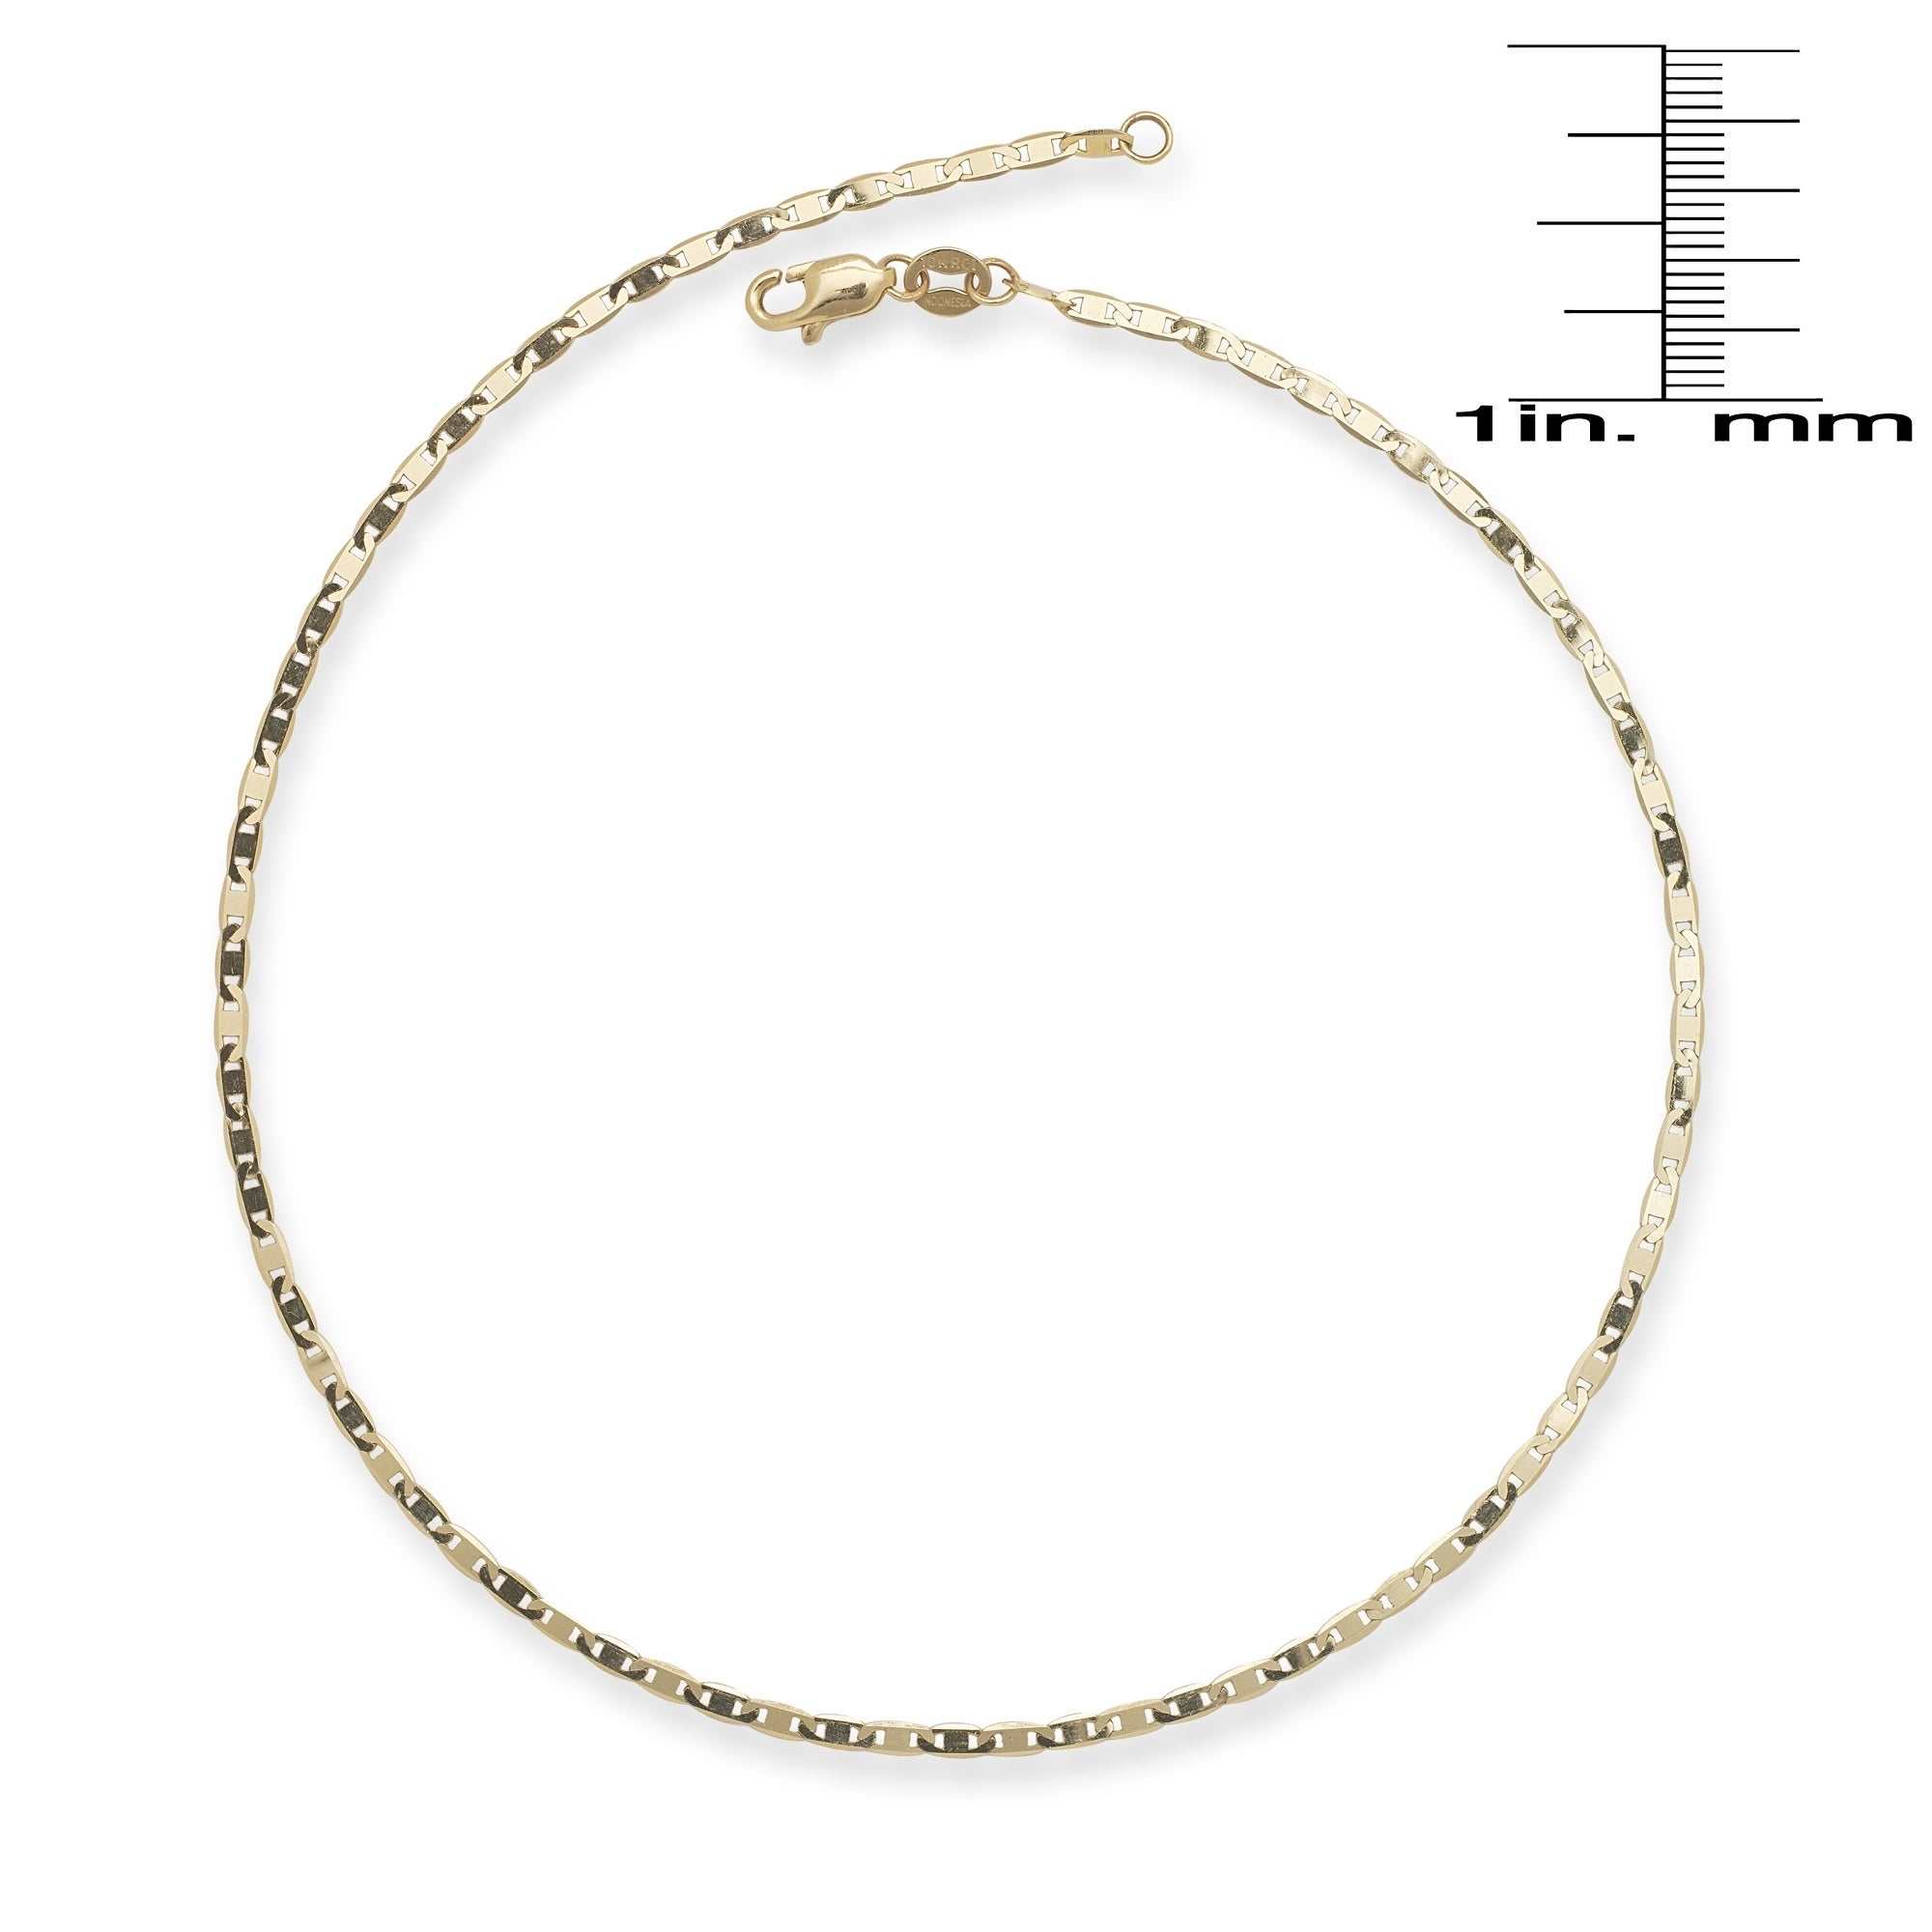 c b chain and rope diamond anklet cut rose itm bracelet main gold solid rdcl fine